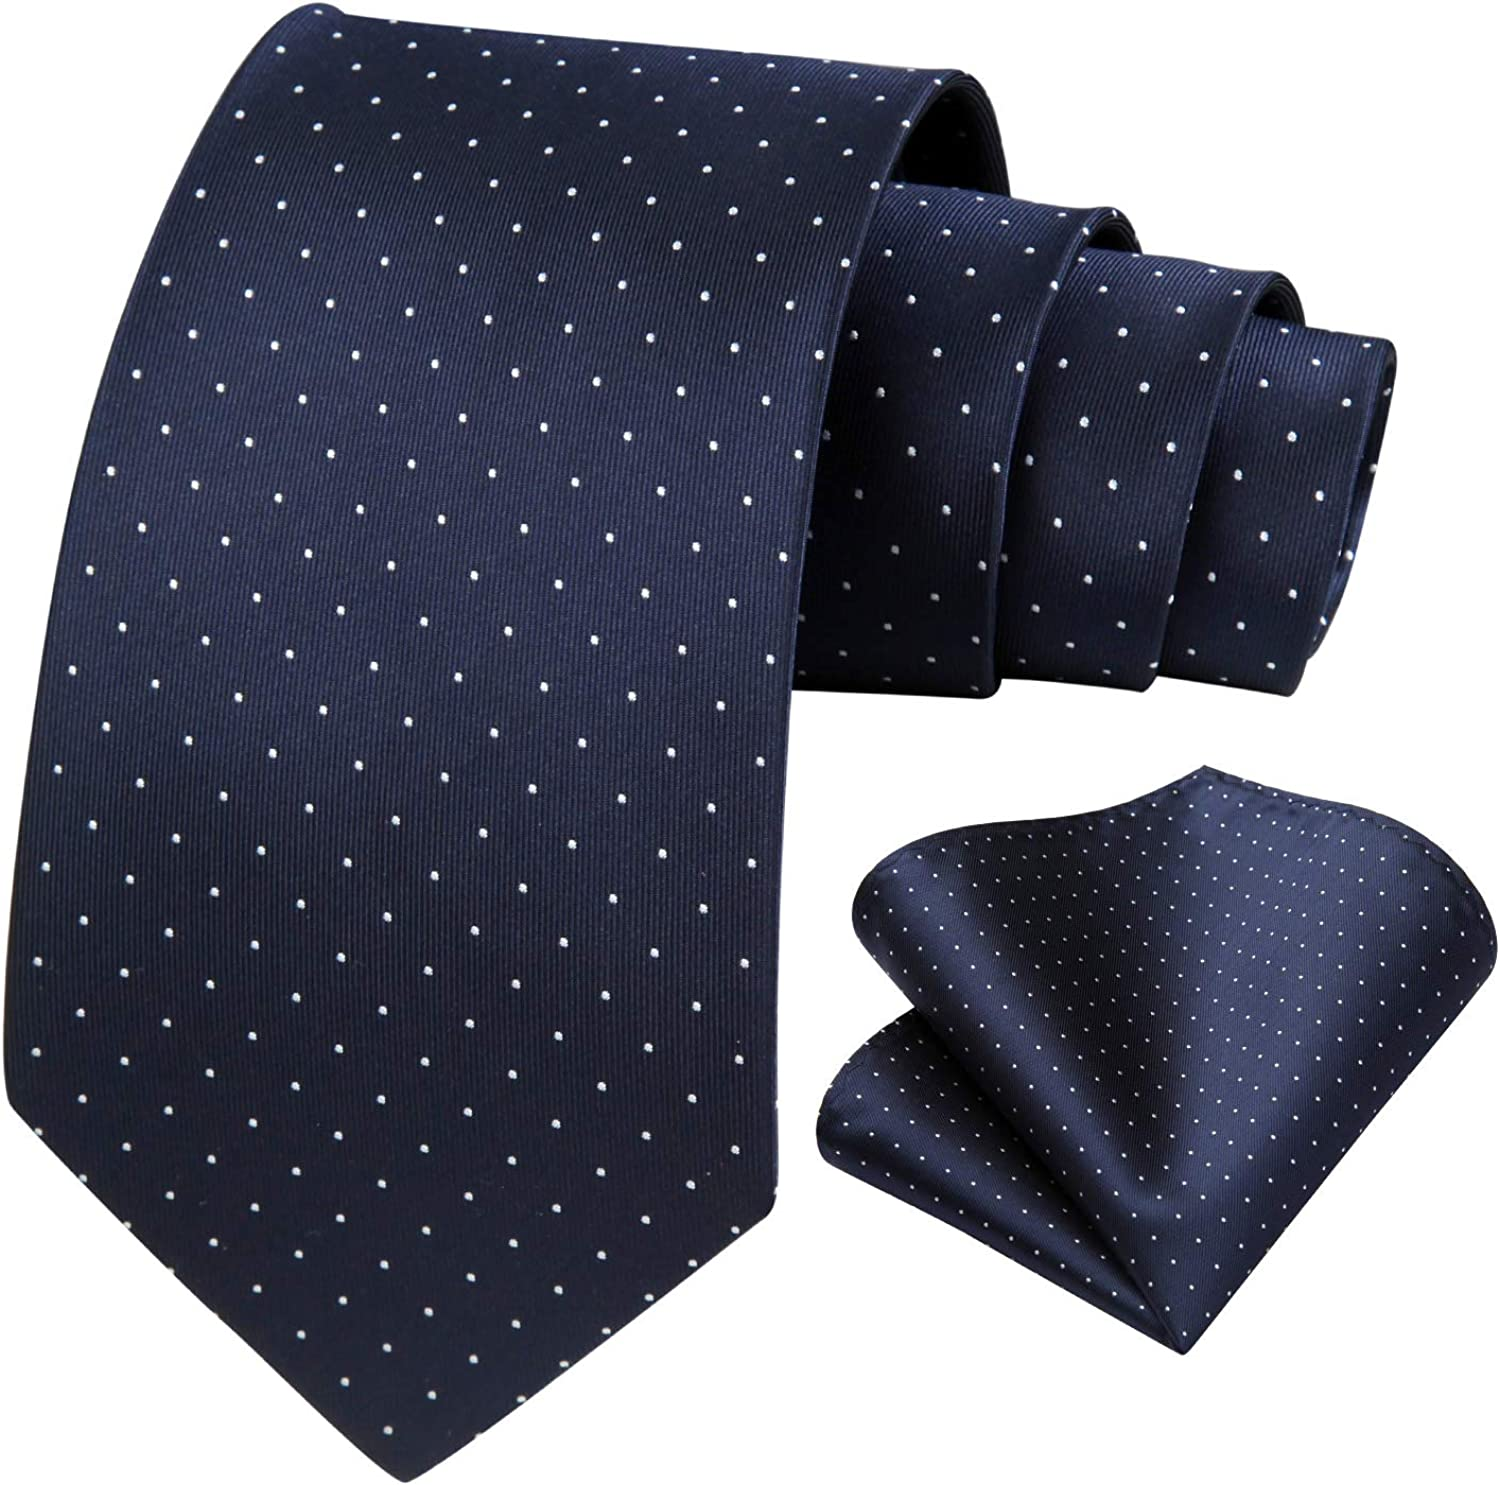 BIYINI Polka Dot Ties for Men with Pocket Square Silk Classic Neck Tie Handkerchief Set for Wedding Party